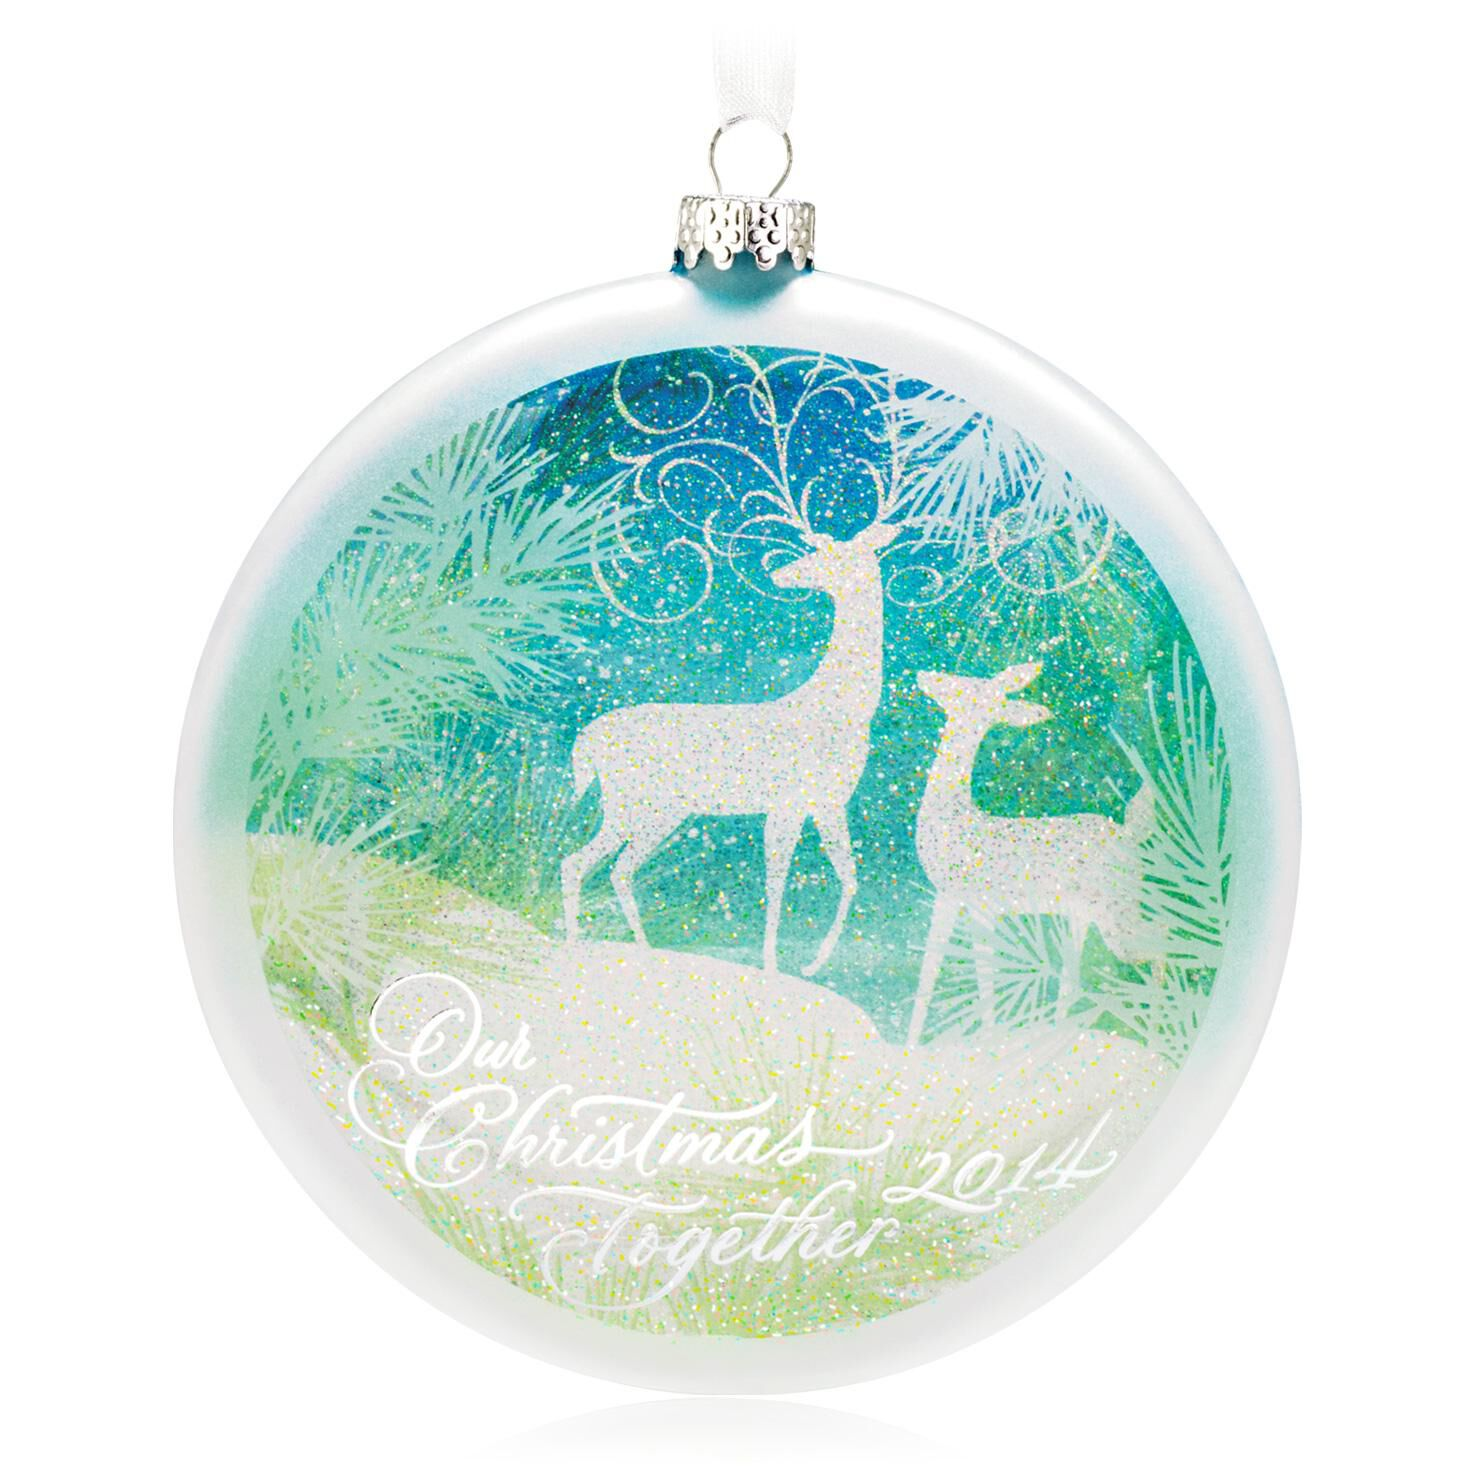 Our Christmas Together 2014   Christmas Ornaments   Hallmark 7v8Ao9U7